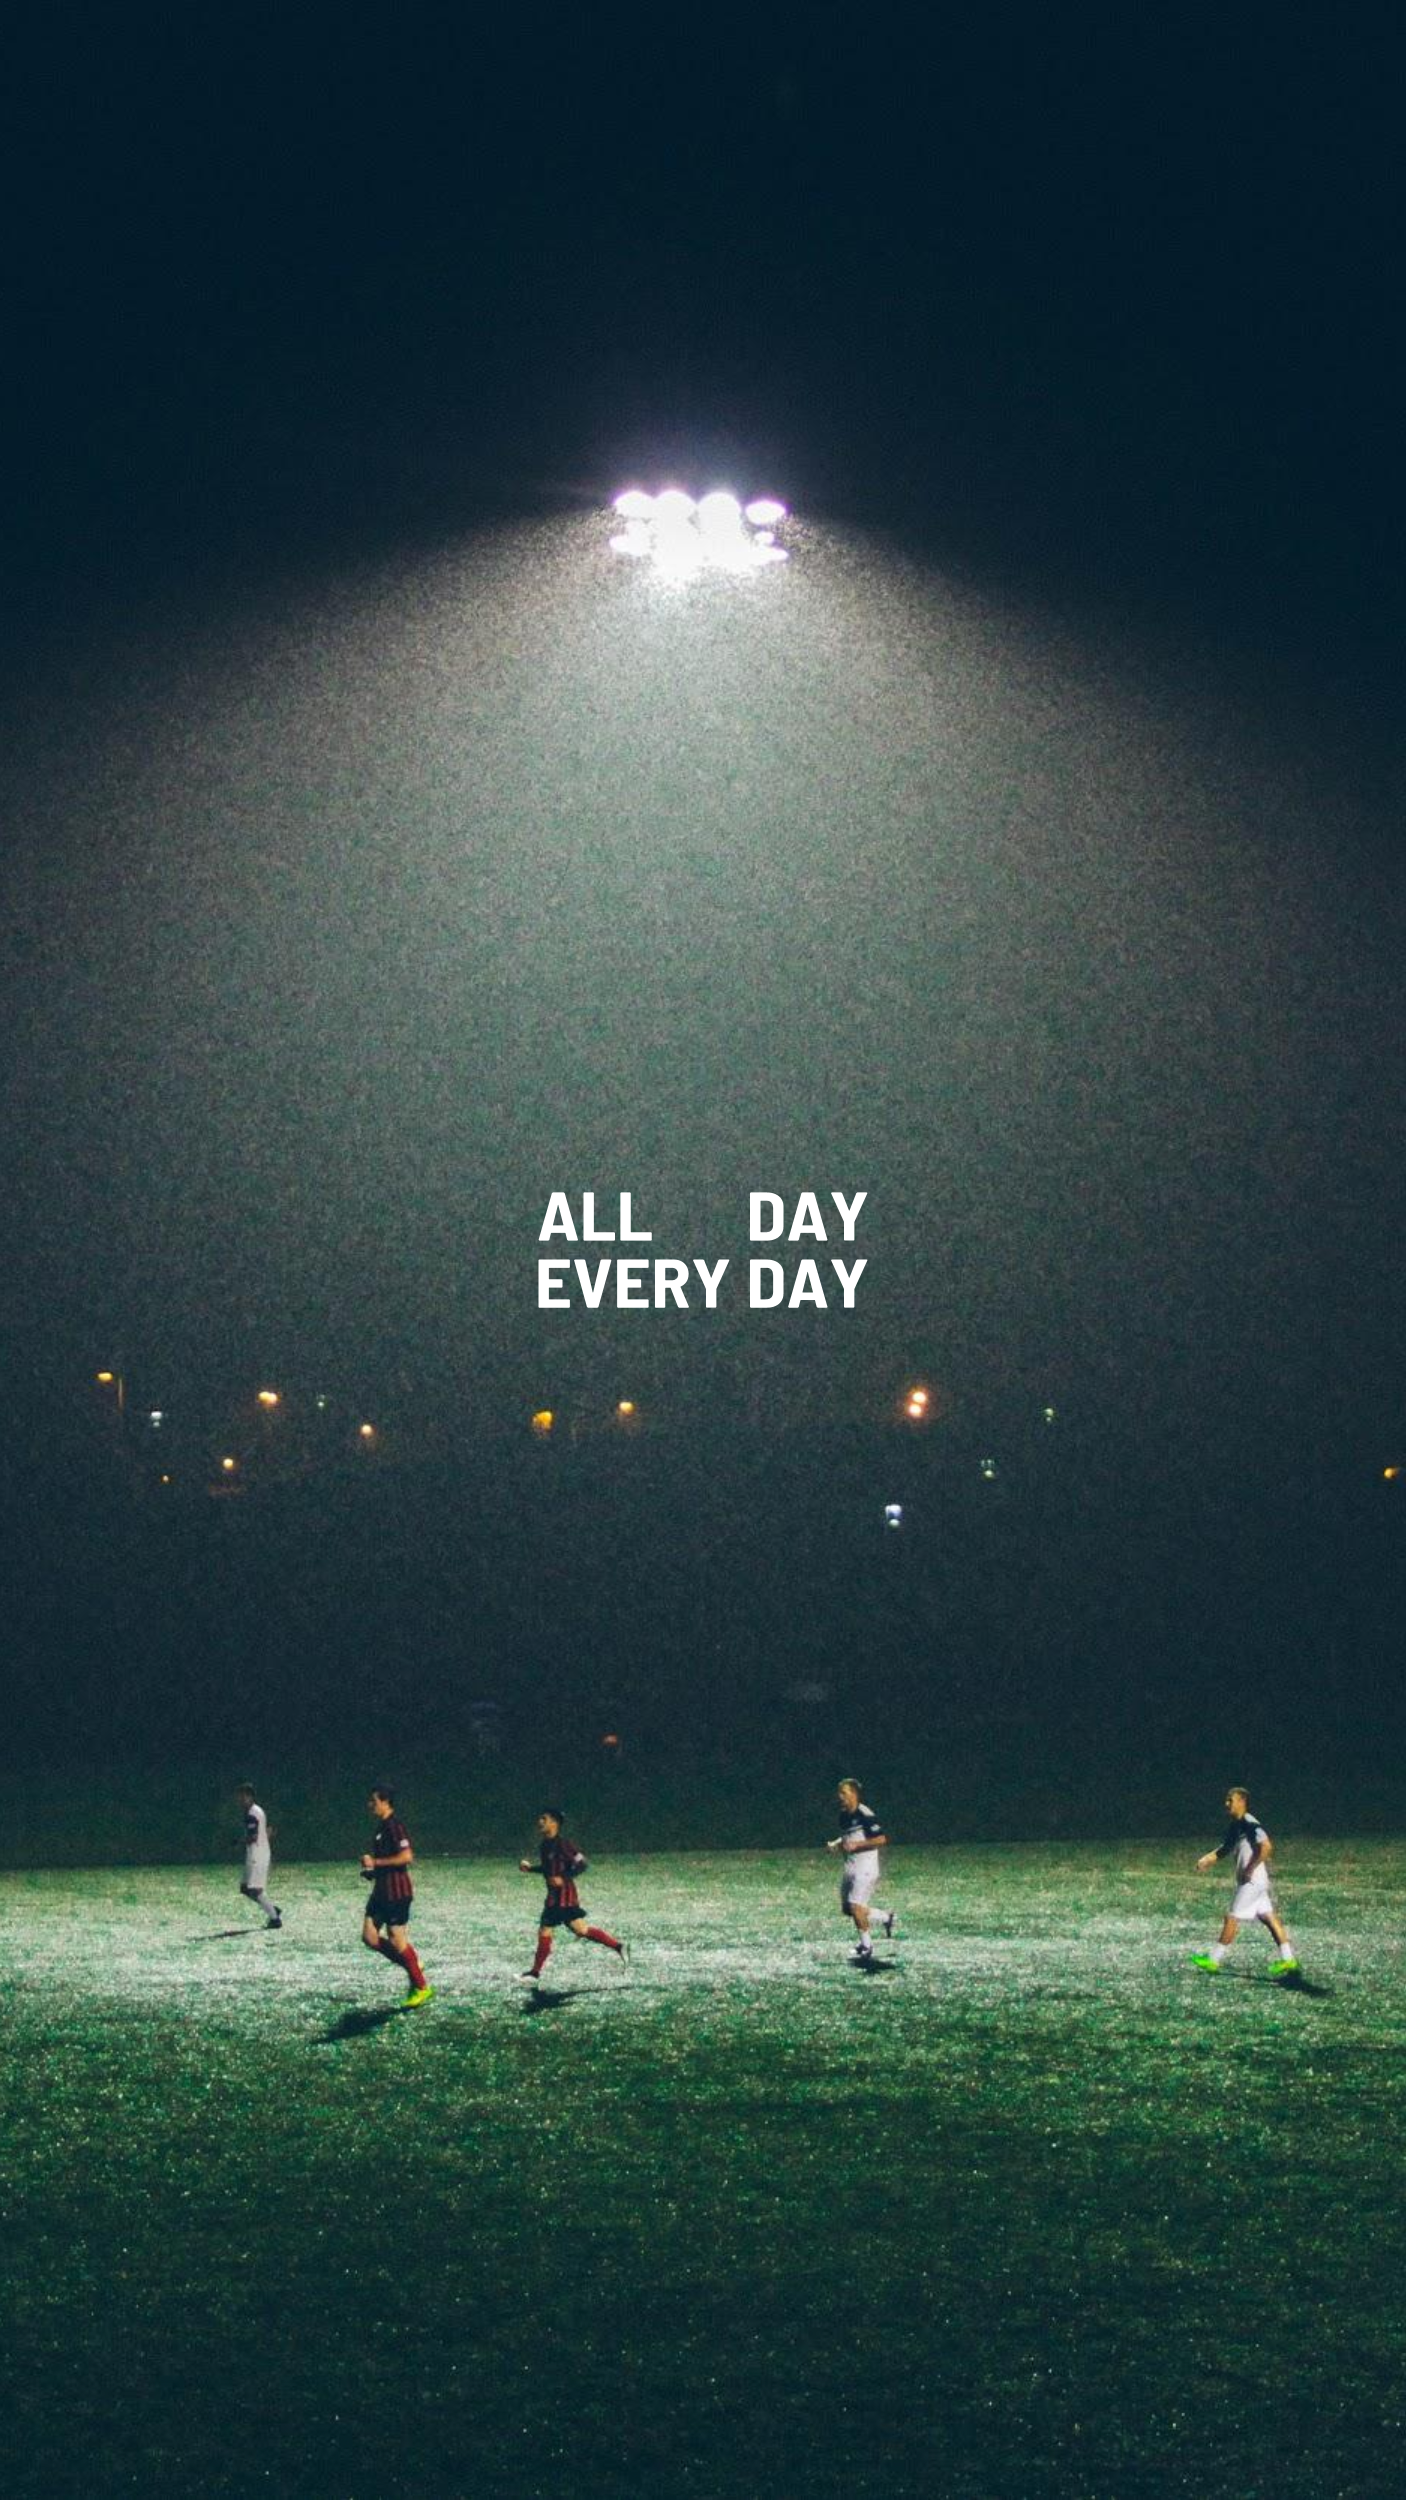 All Day Every Day Football Wallpaper Soccer Photography Soccer Motivation